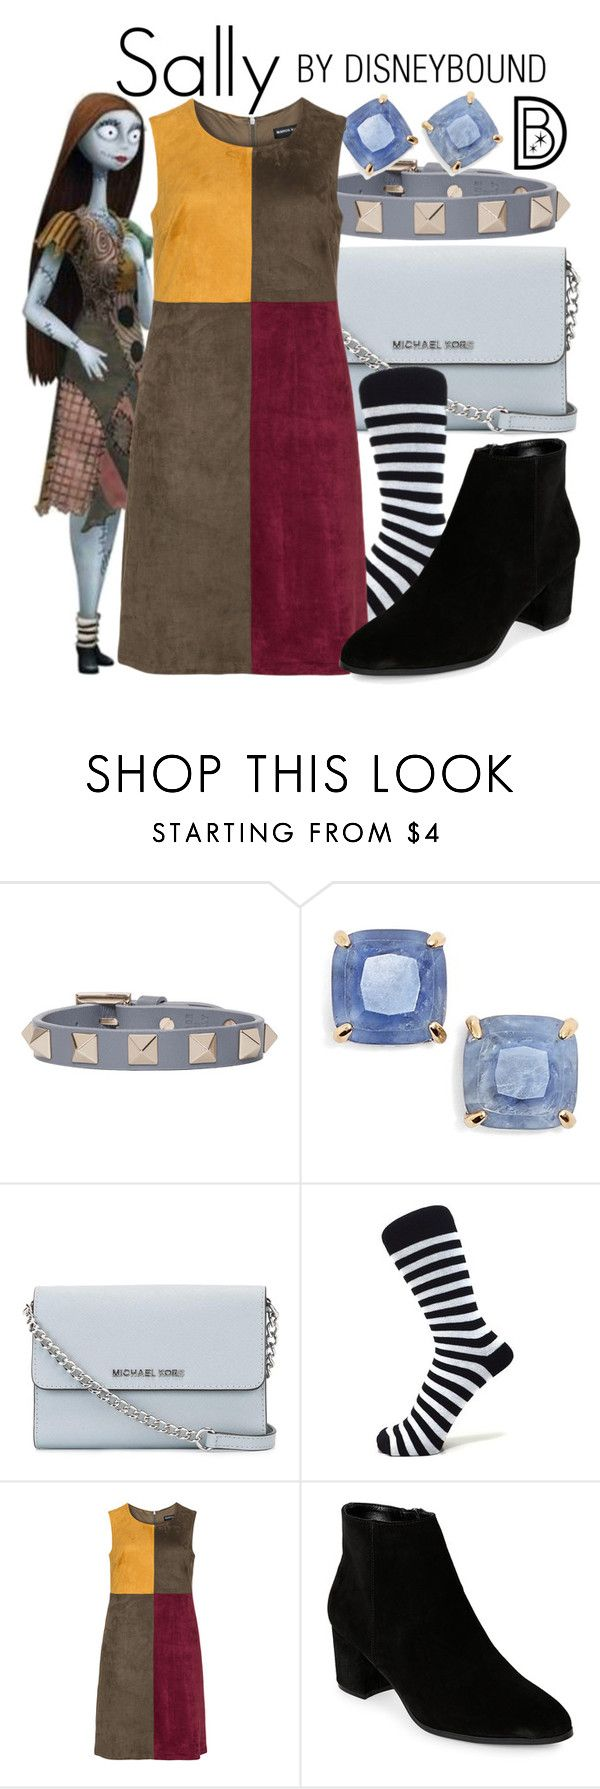 """Sally"" by leslieakay ❤ liked on Polyvore featuring Valentino, Kate Spade, MICHAEL Michael Kors, Manon Baptiste, Franco Sarto, disney, disneybound and disneycharacter"